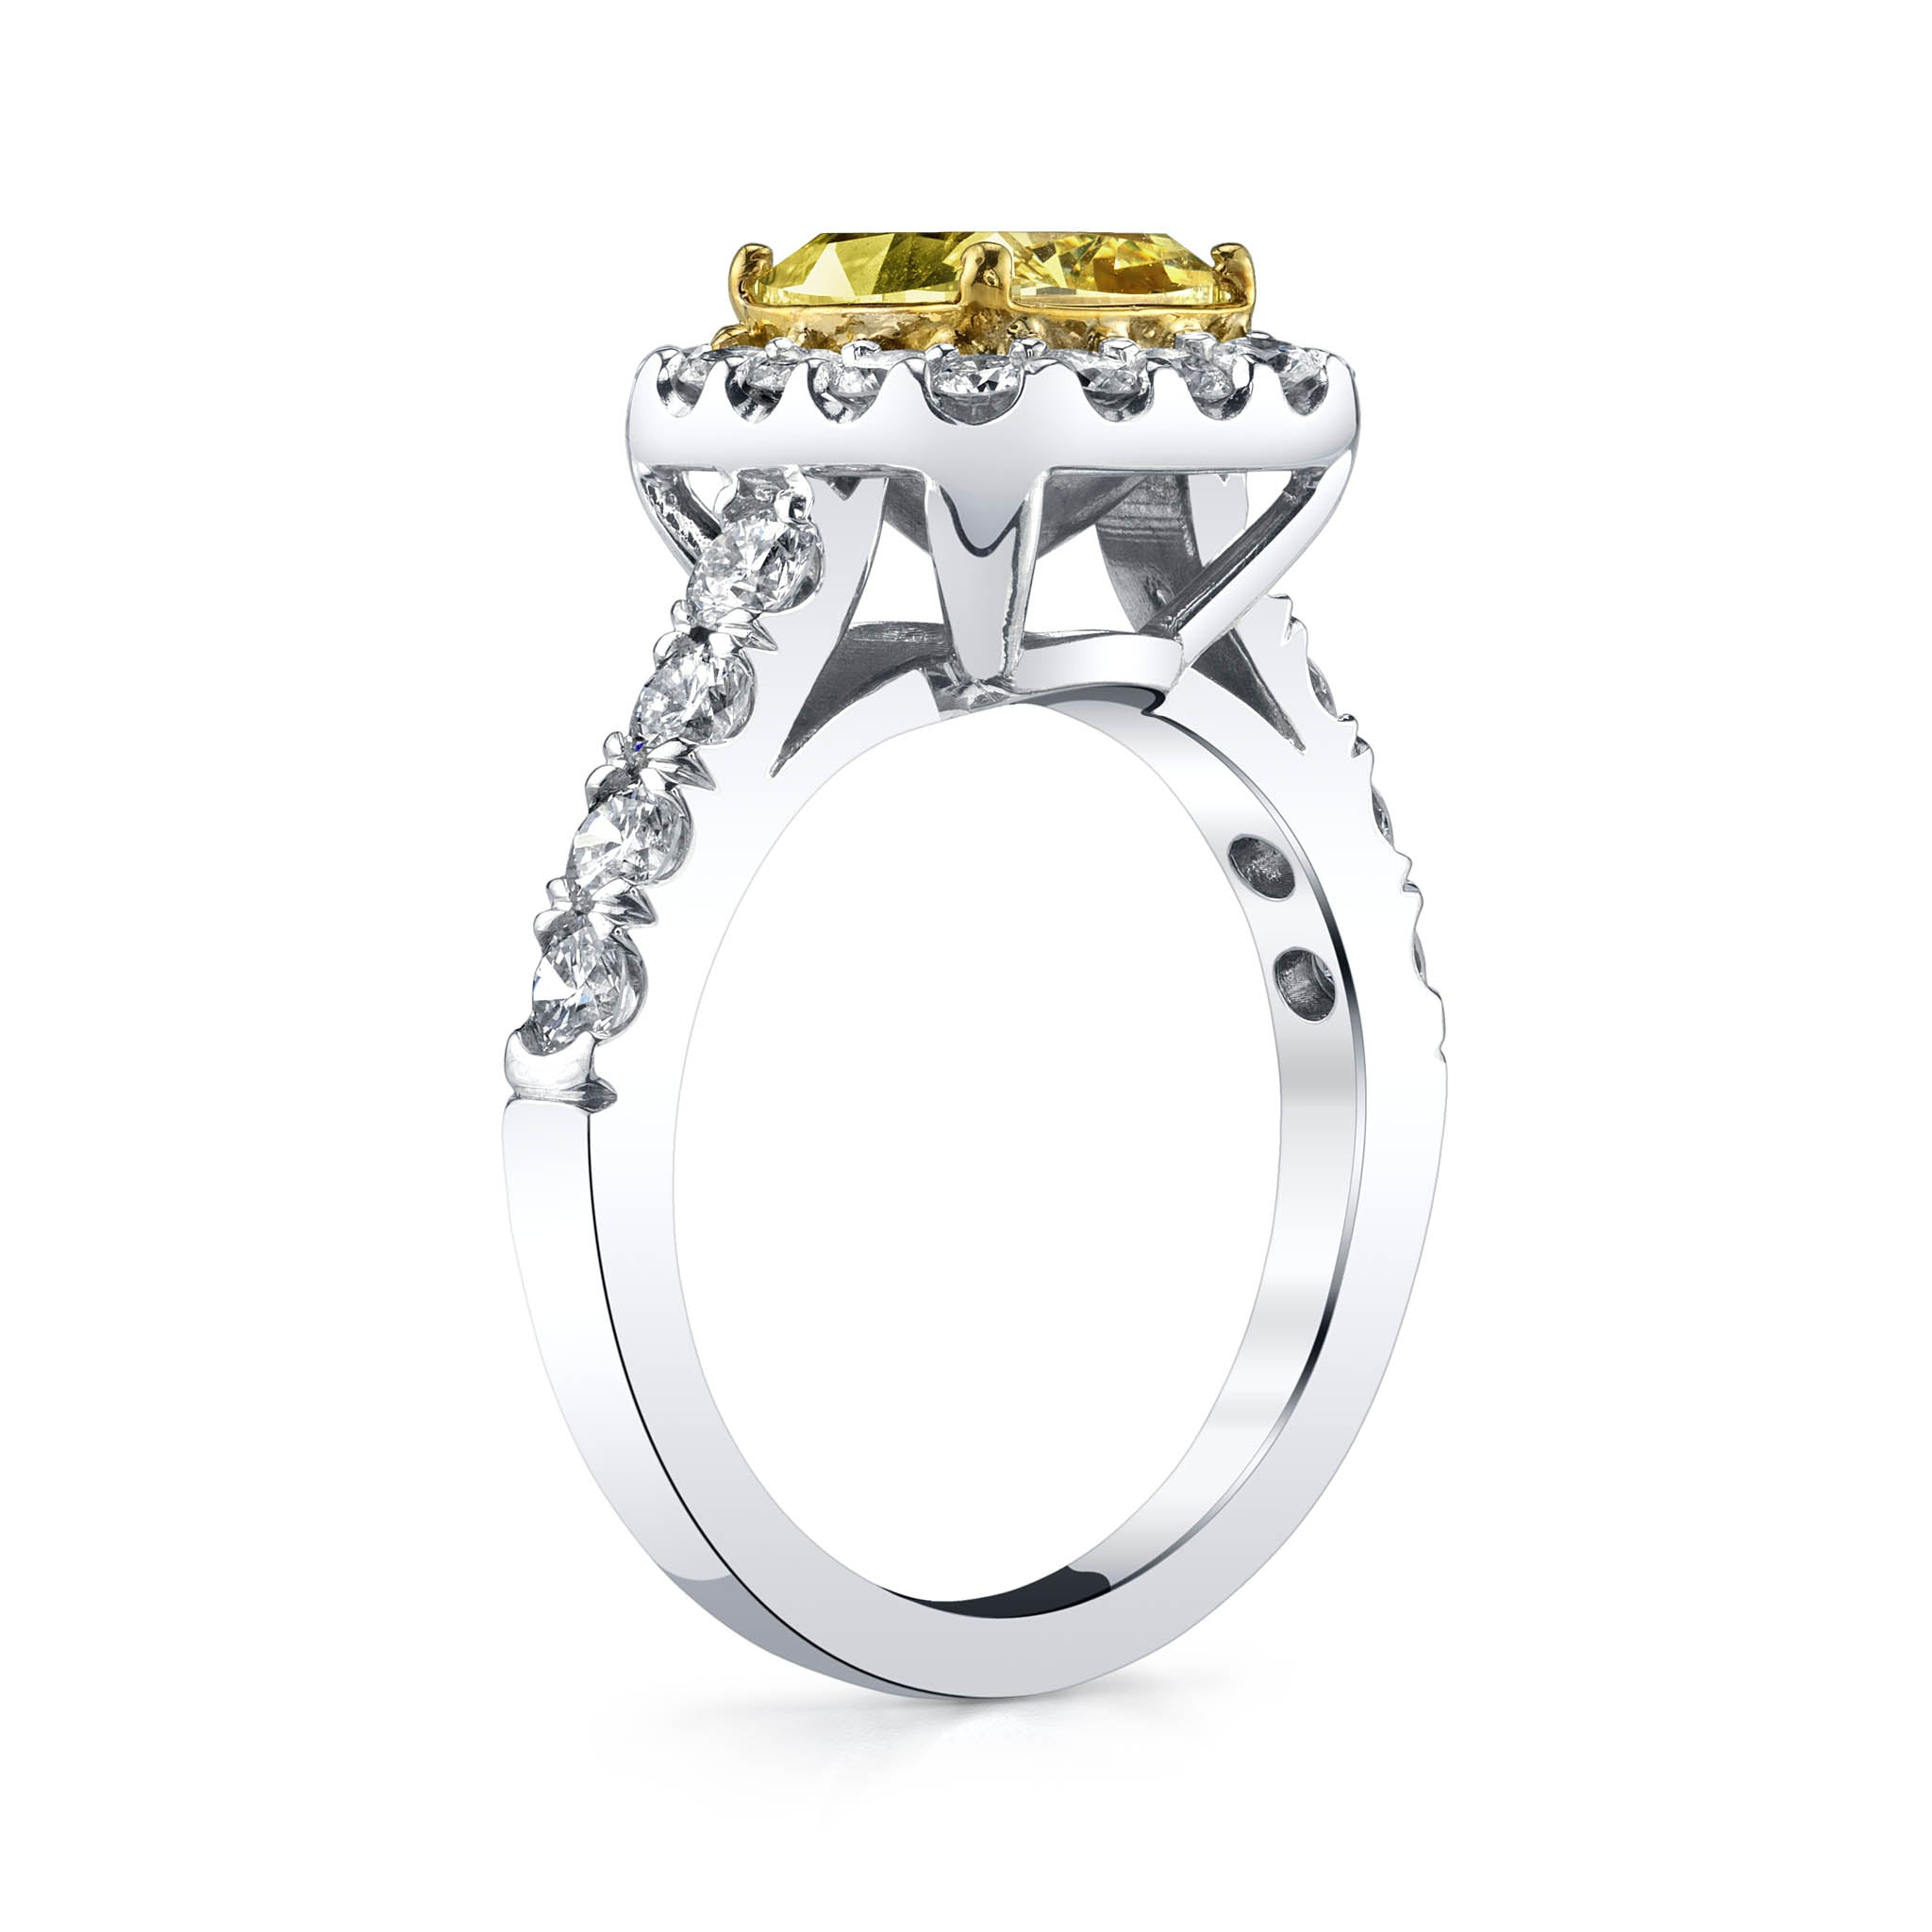 2-Carat Fancy Intense Yellow Diamond Ring